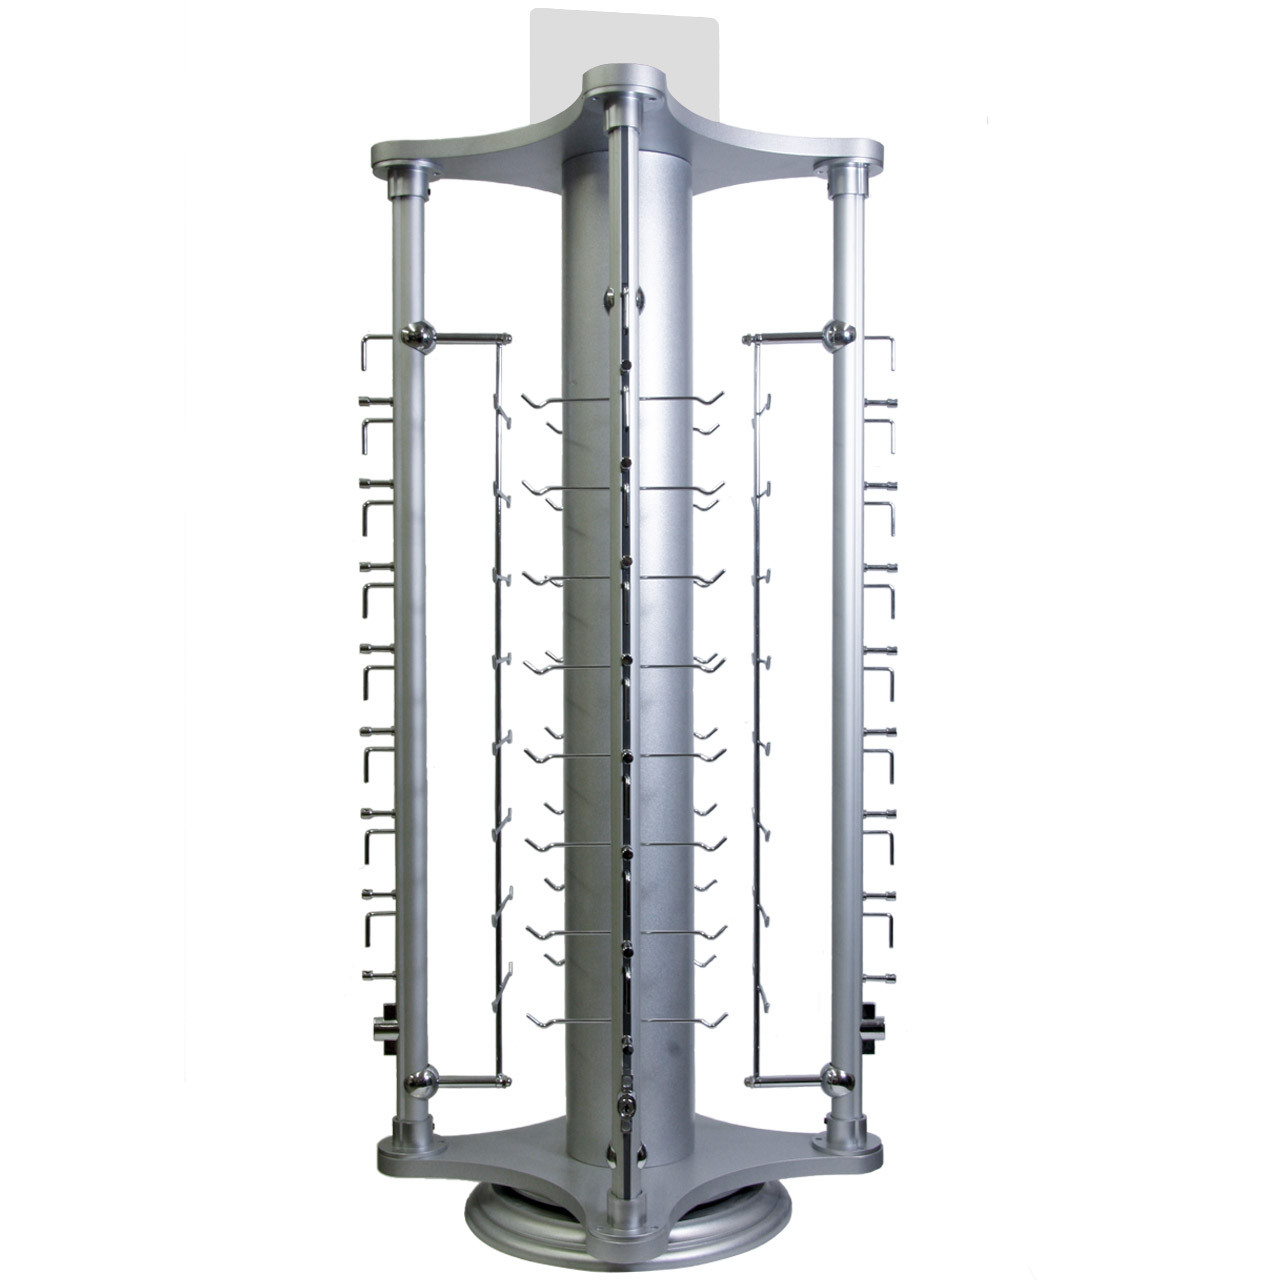 Locking Counter Top Rotating Sunglass Display Stand ~ Holds 32 Pairs 7067 (1 pc.)